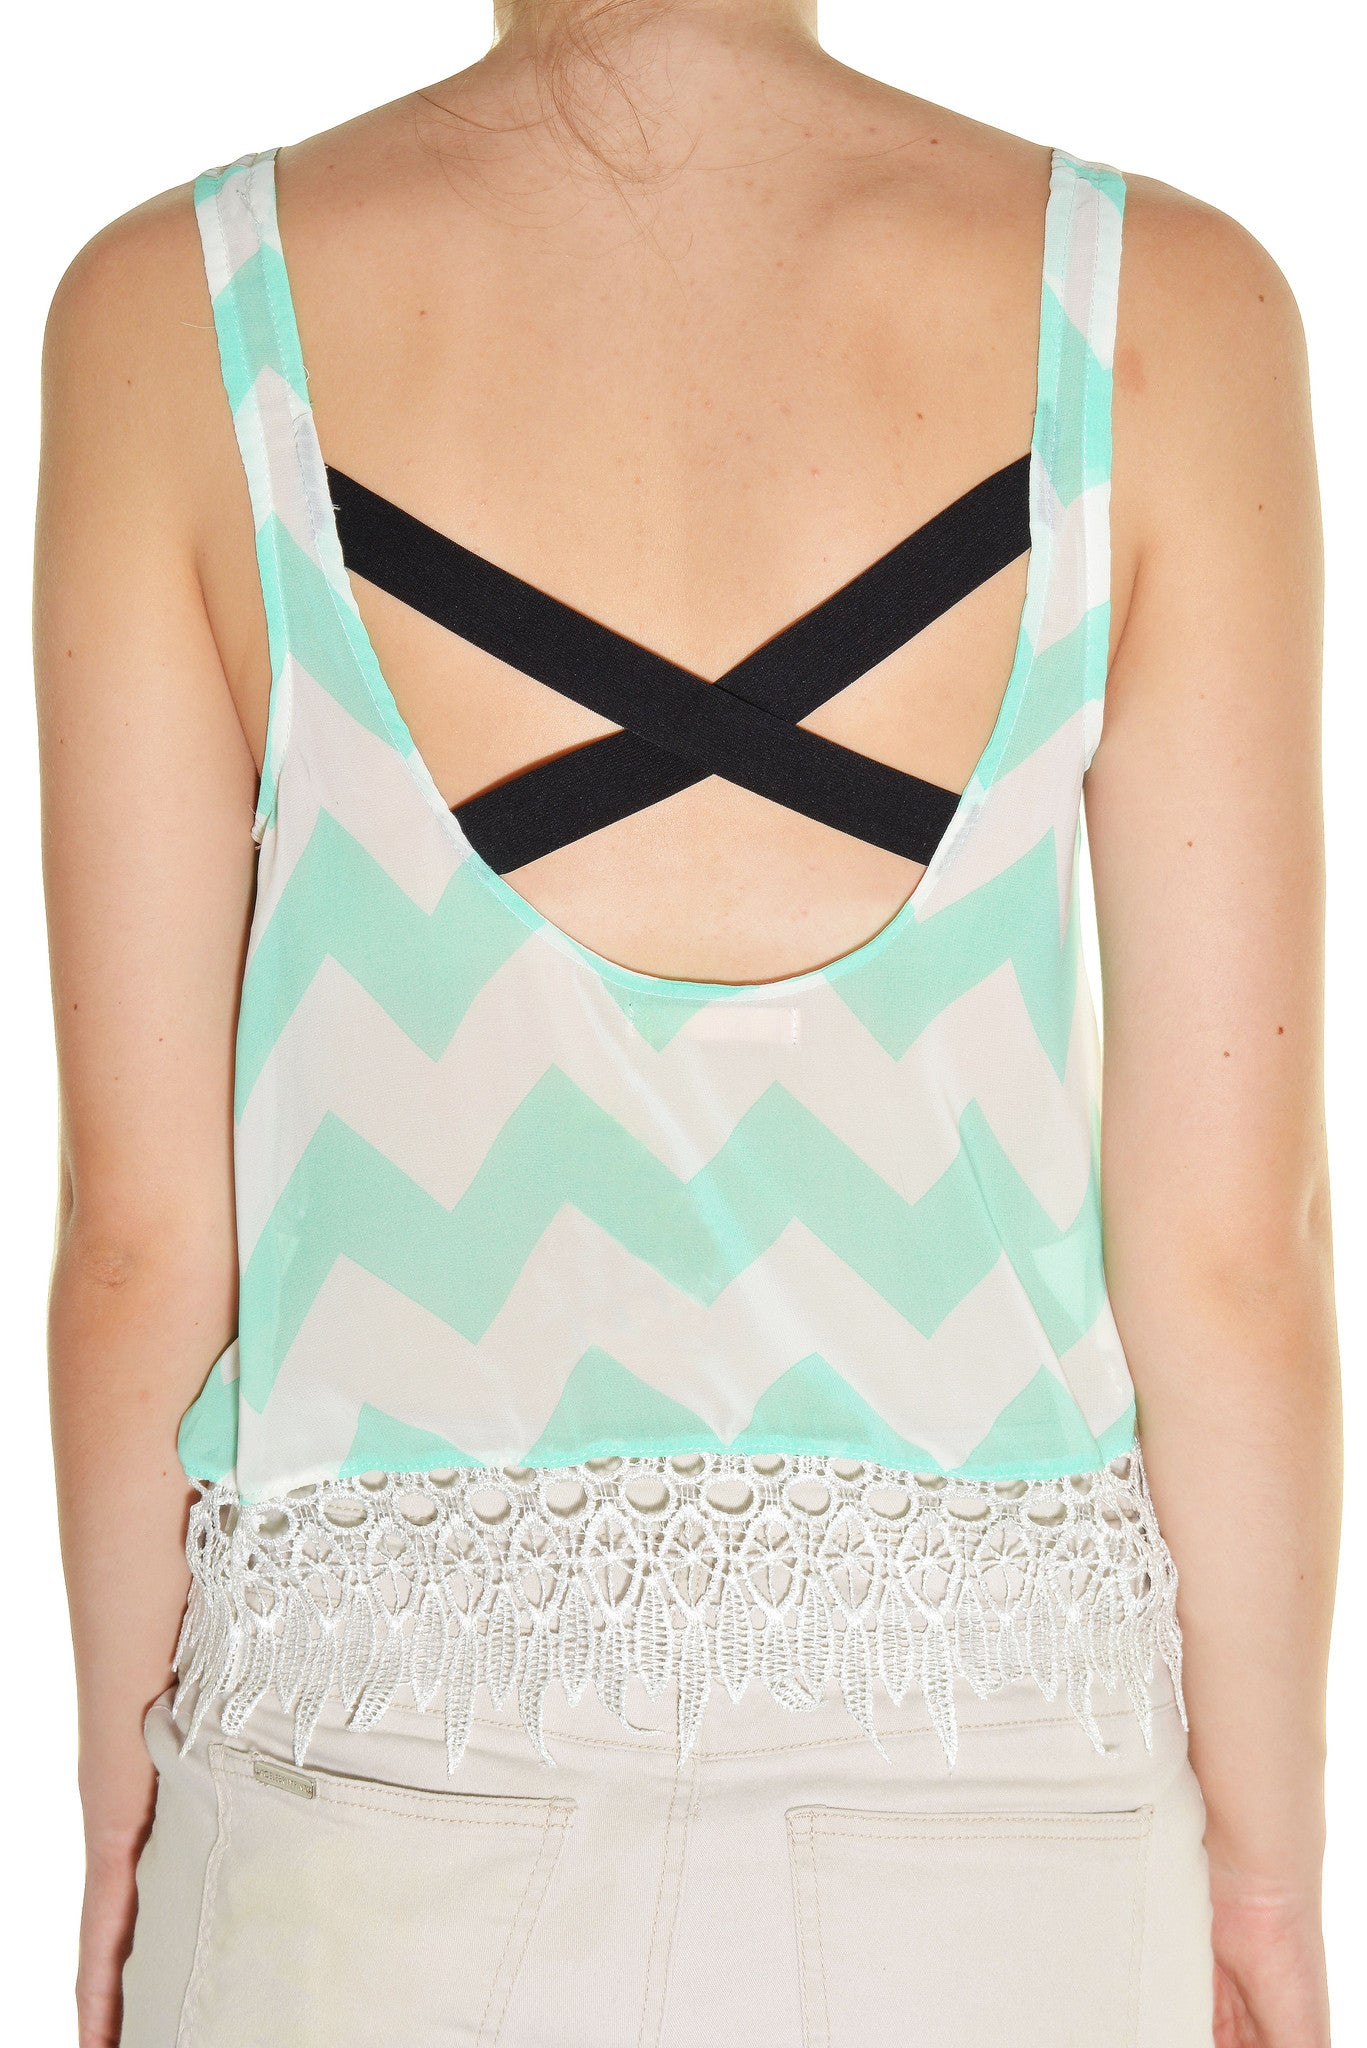 Banana USA Chiffon Lace Zig Zag Tank (Mint Green White),Shirts,Banana USA - Discount Divas